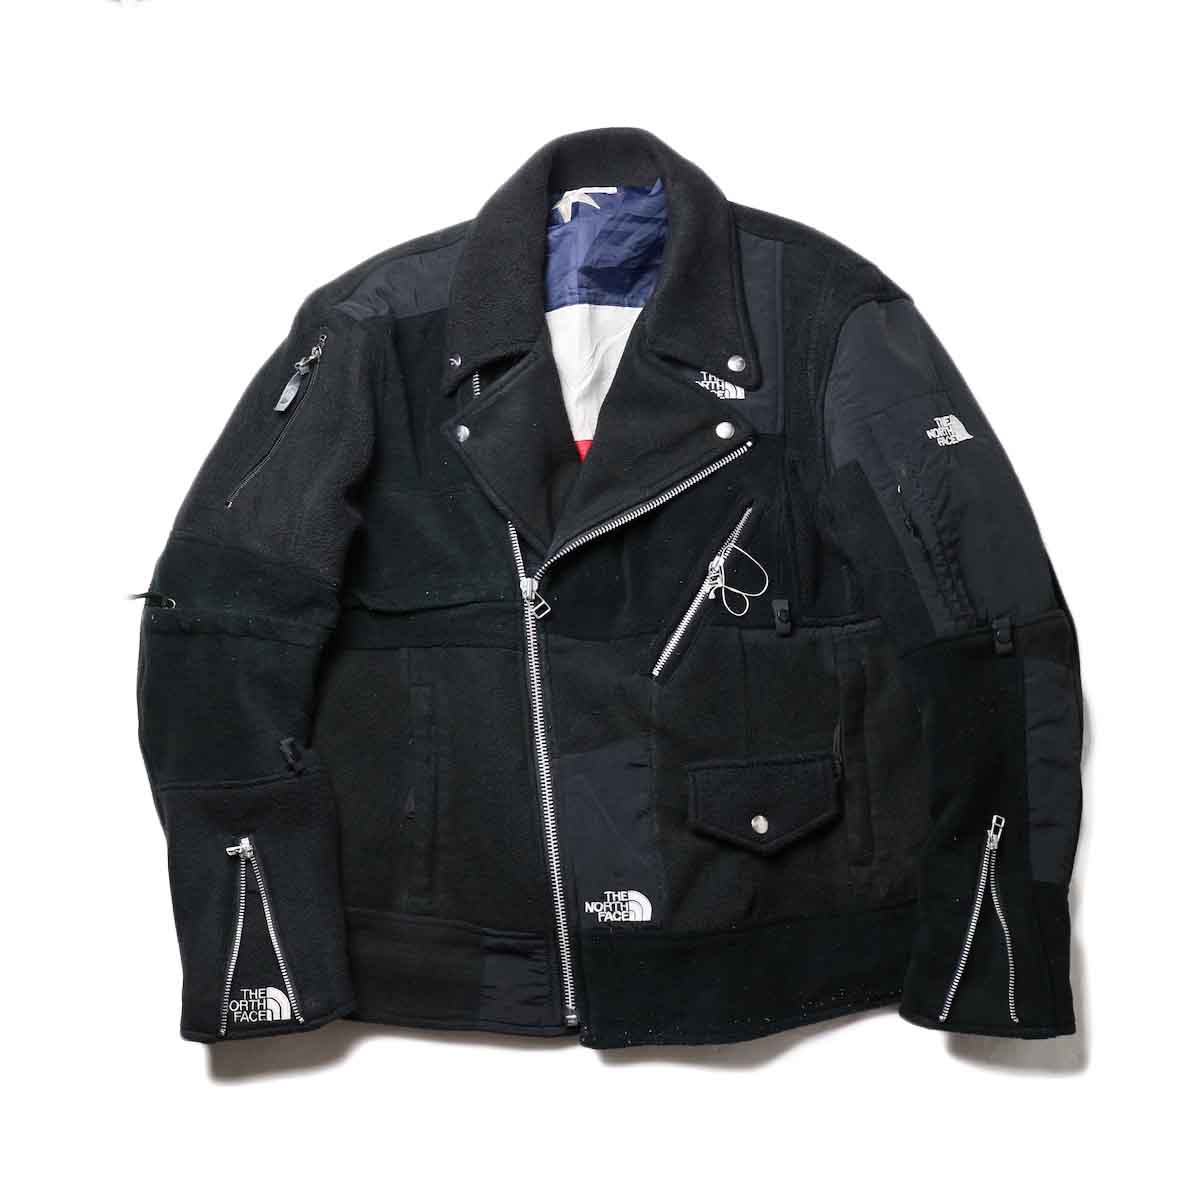 OLD PARK / Oversized Riders Jacket -Outdoor正面